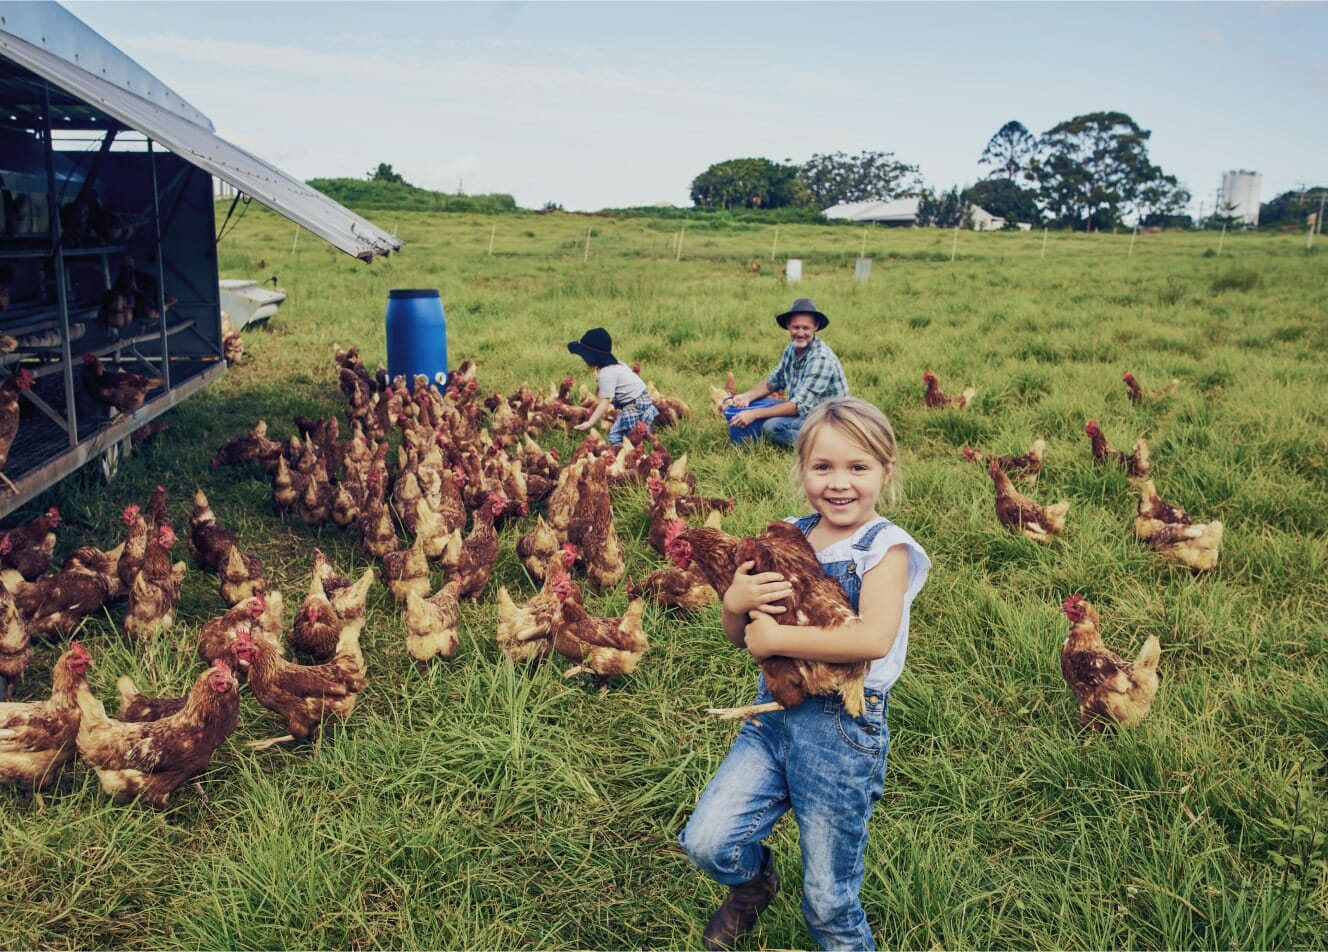 A young girl holding a chicken in a field, while a farmer and another child look on in the background.